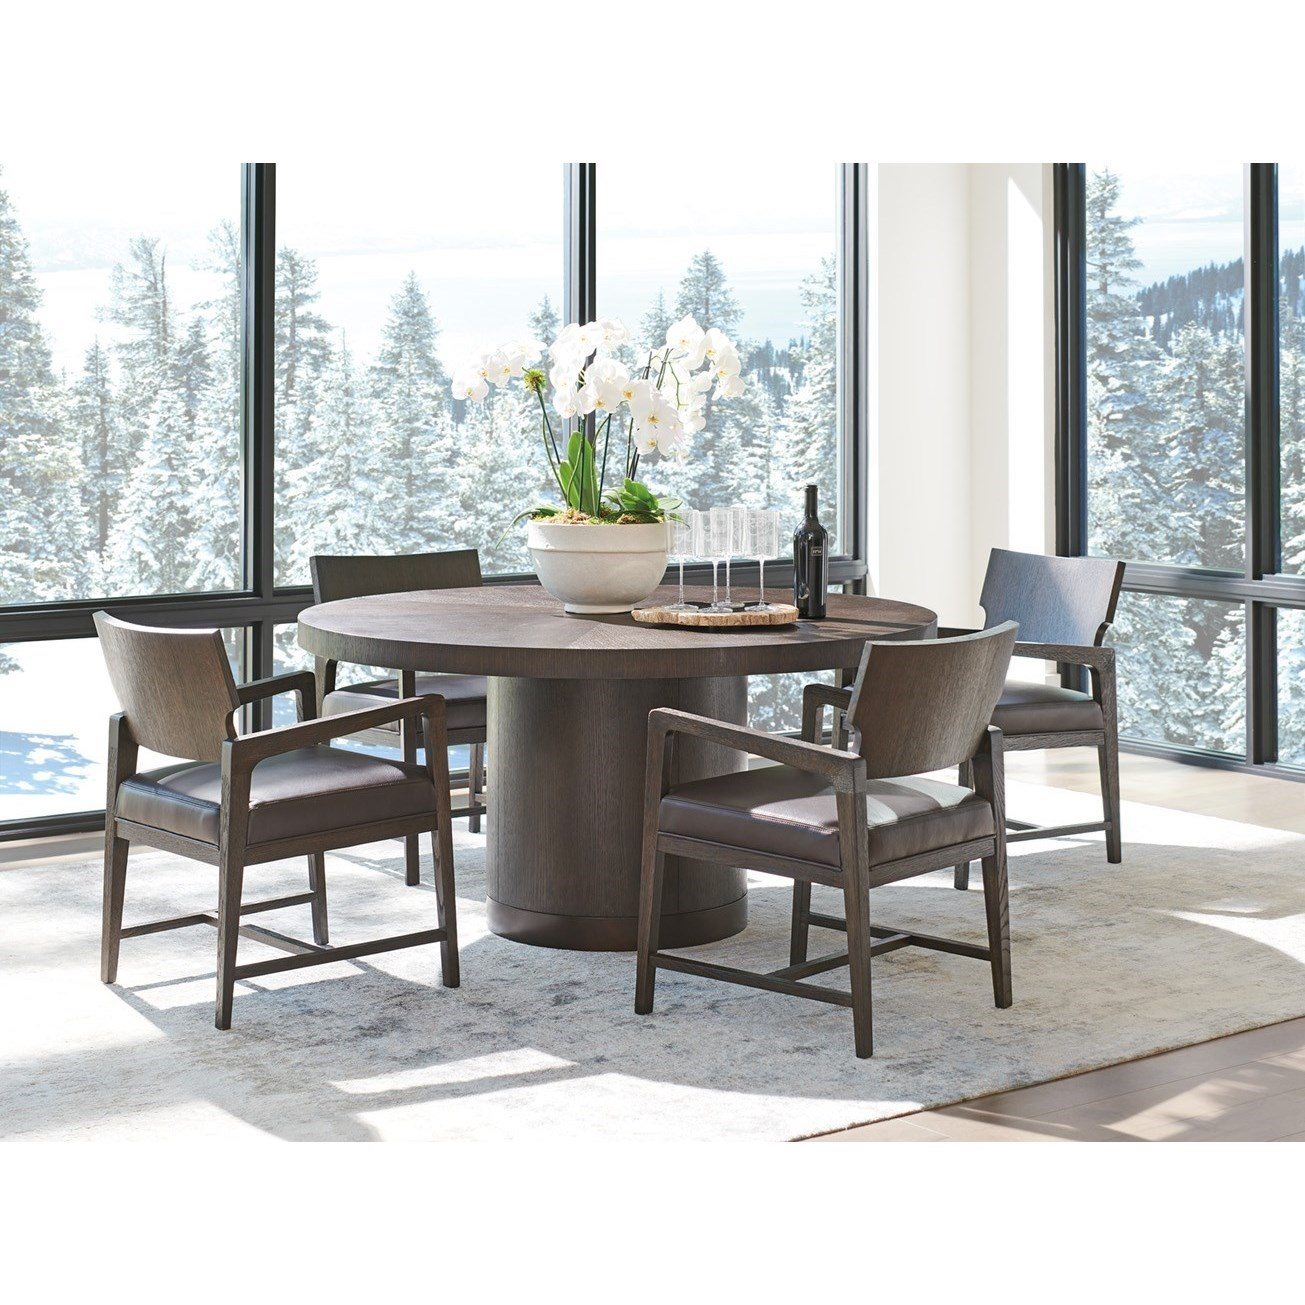 Park City 5-Piece Dining Set by Barclay Butera at Baer's Furniture